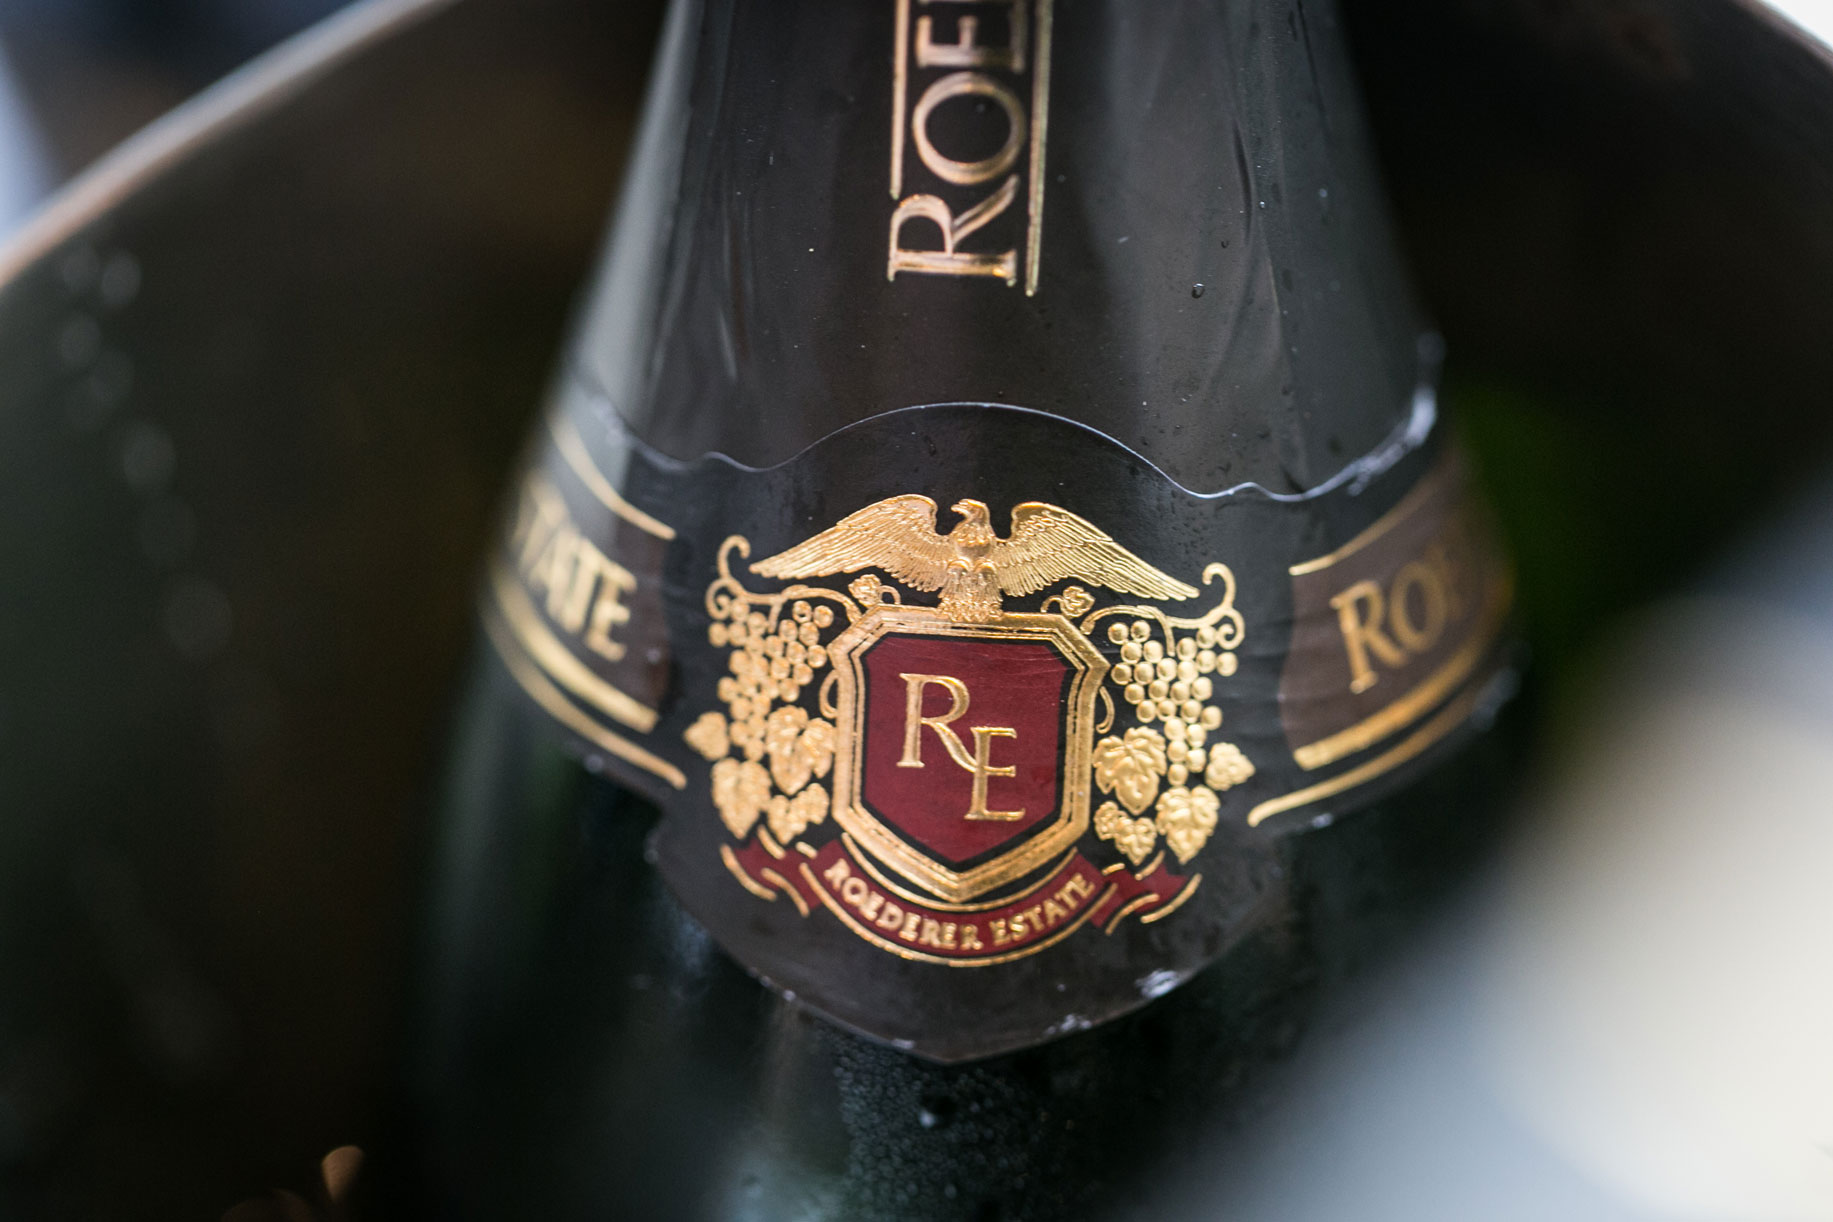 Roederer Estate bottle of sparkling wine